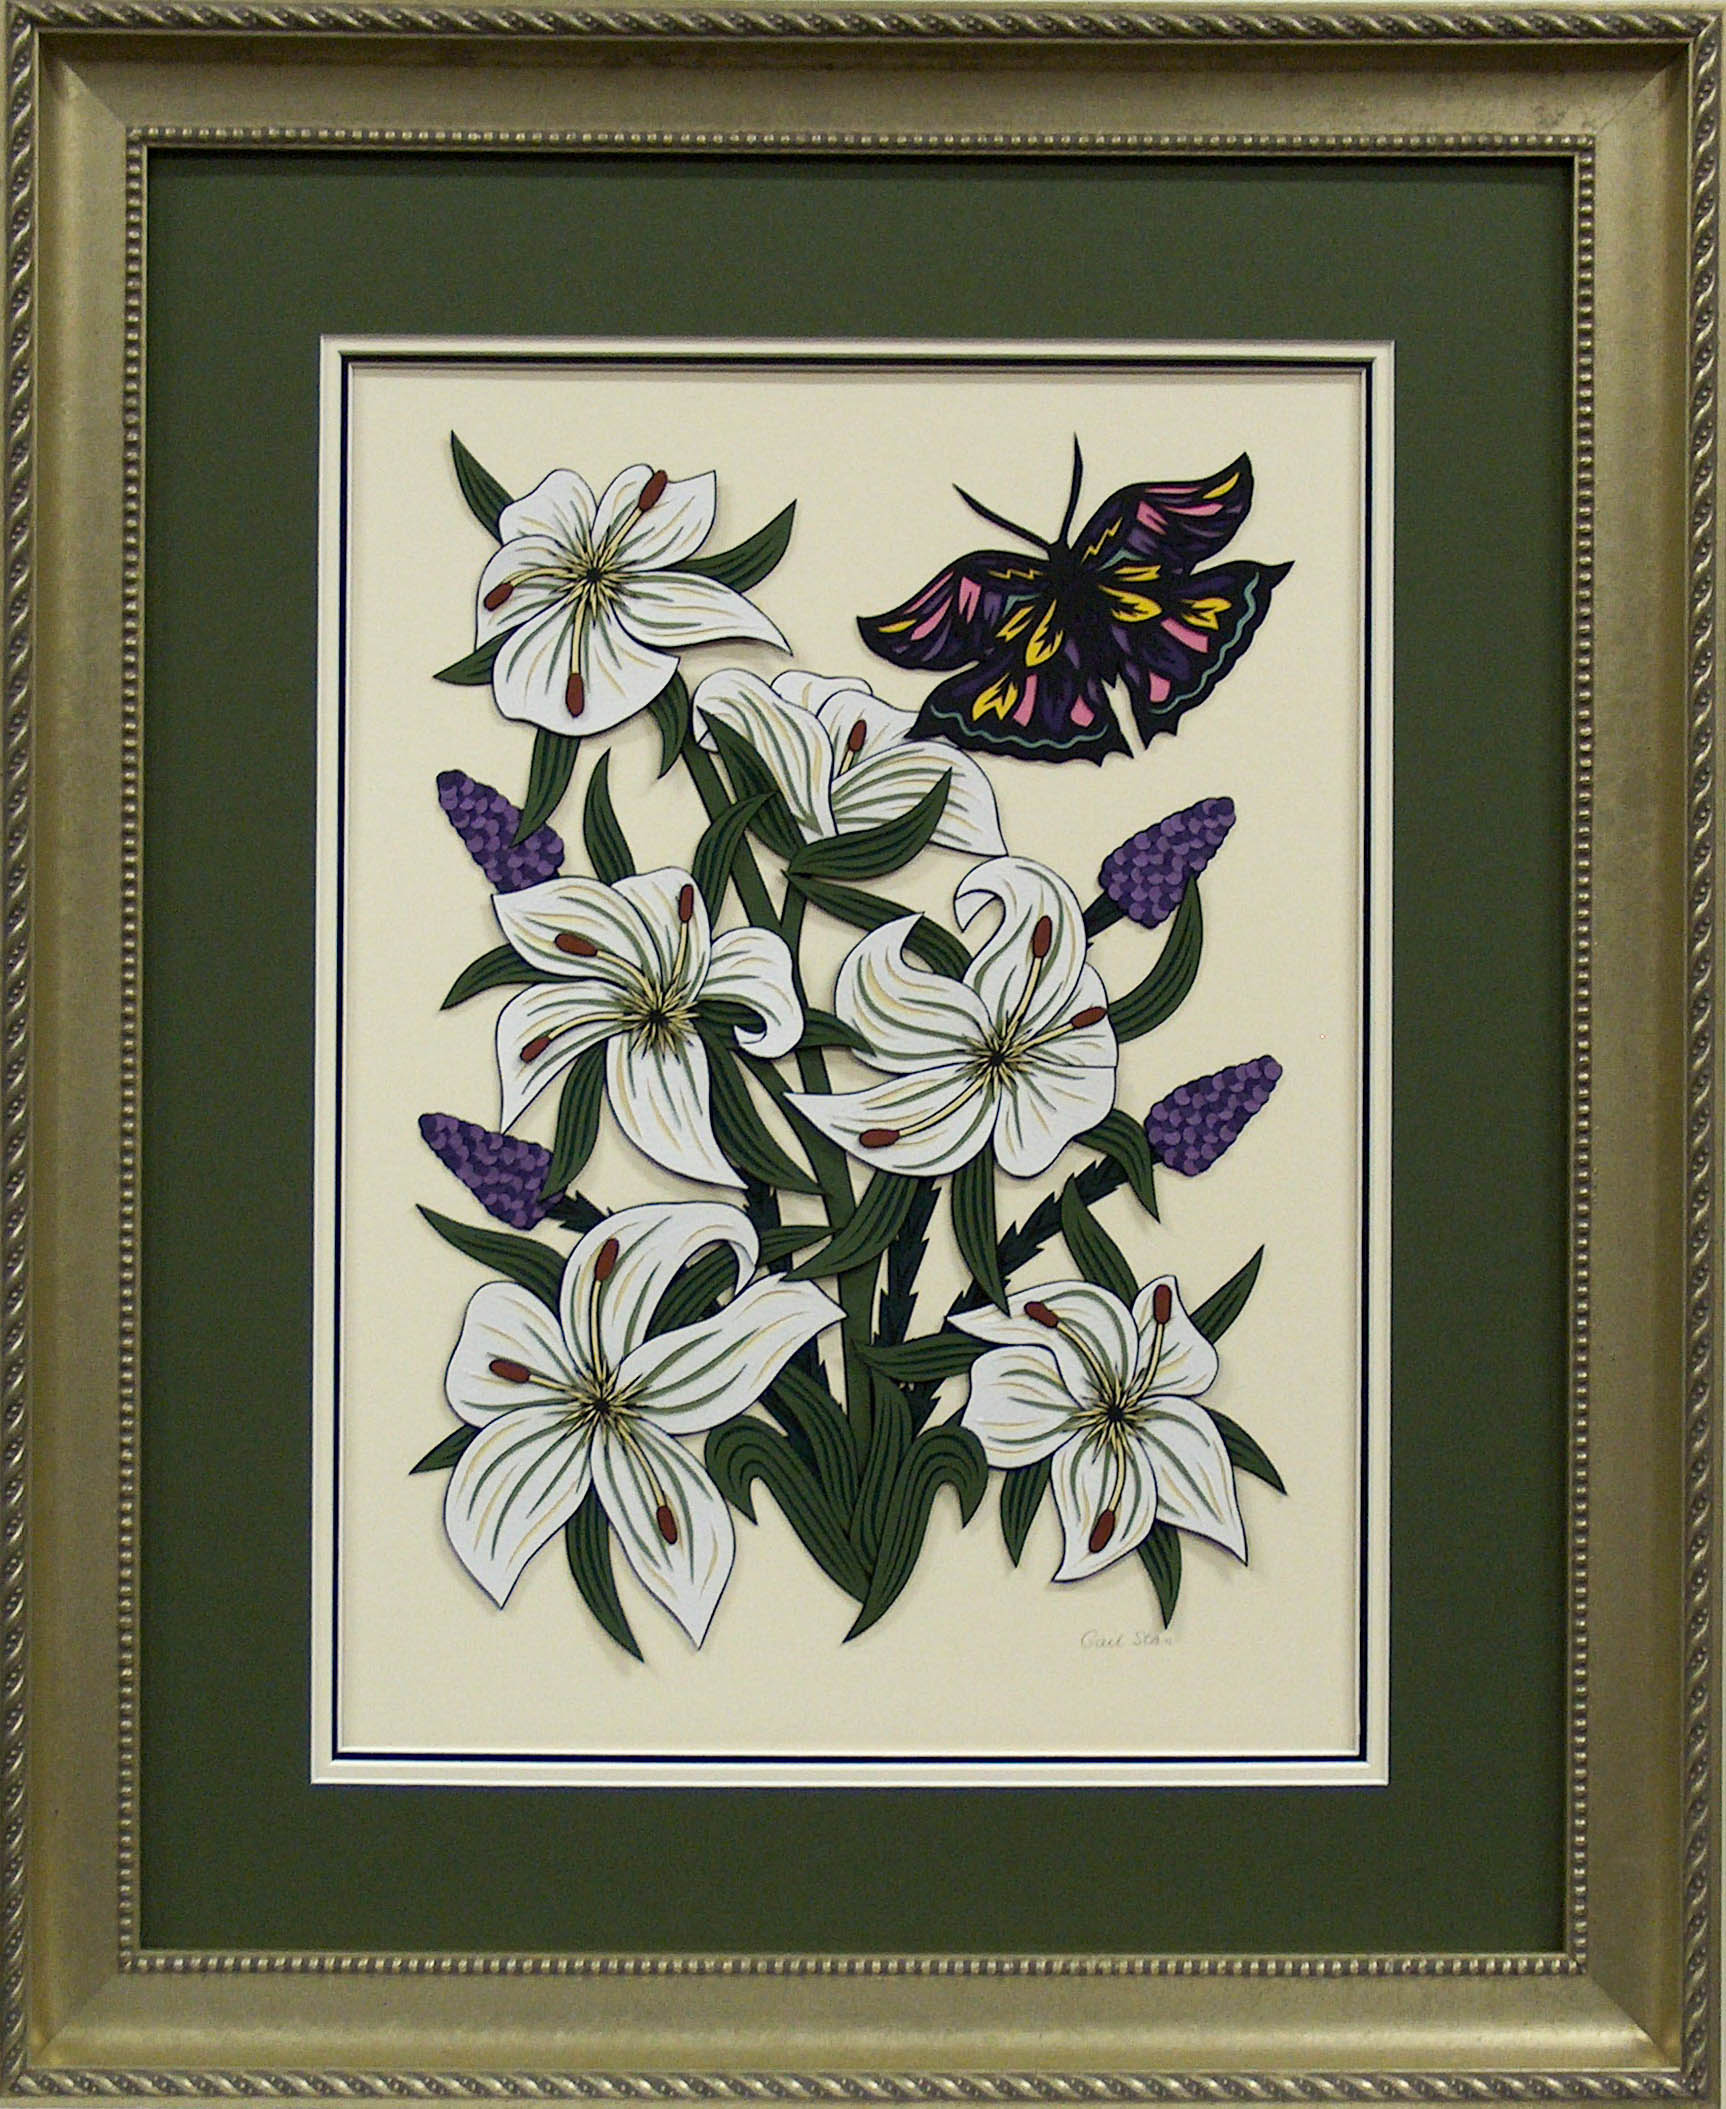 Lilies-and-Butterfly.jpg